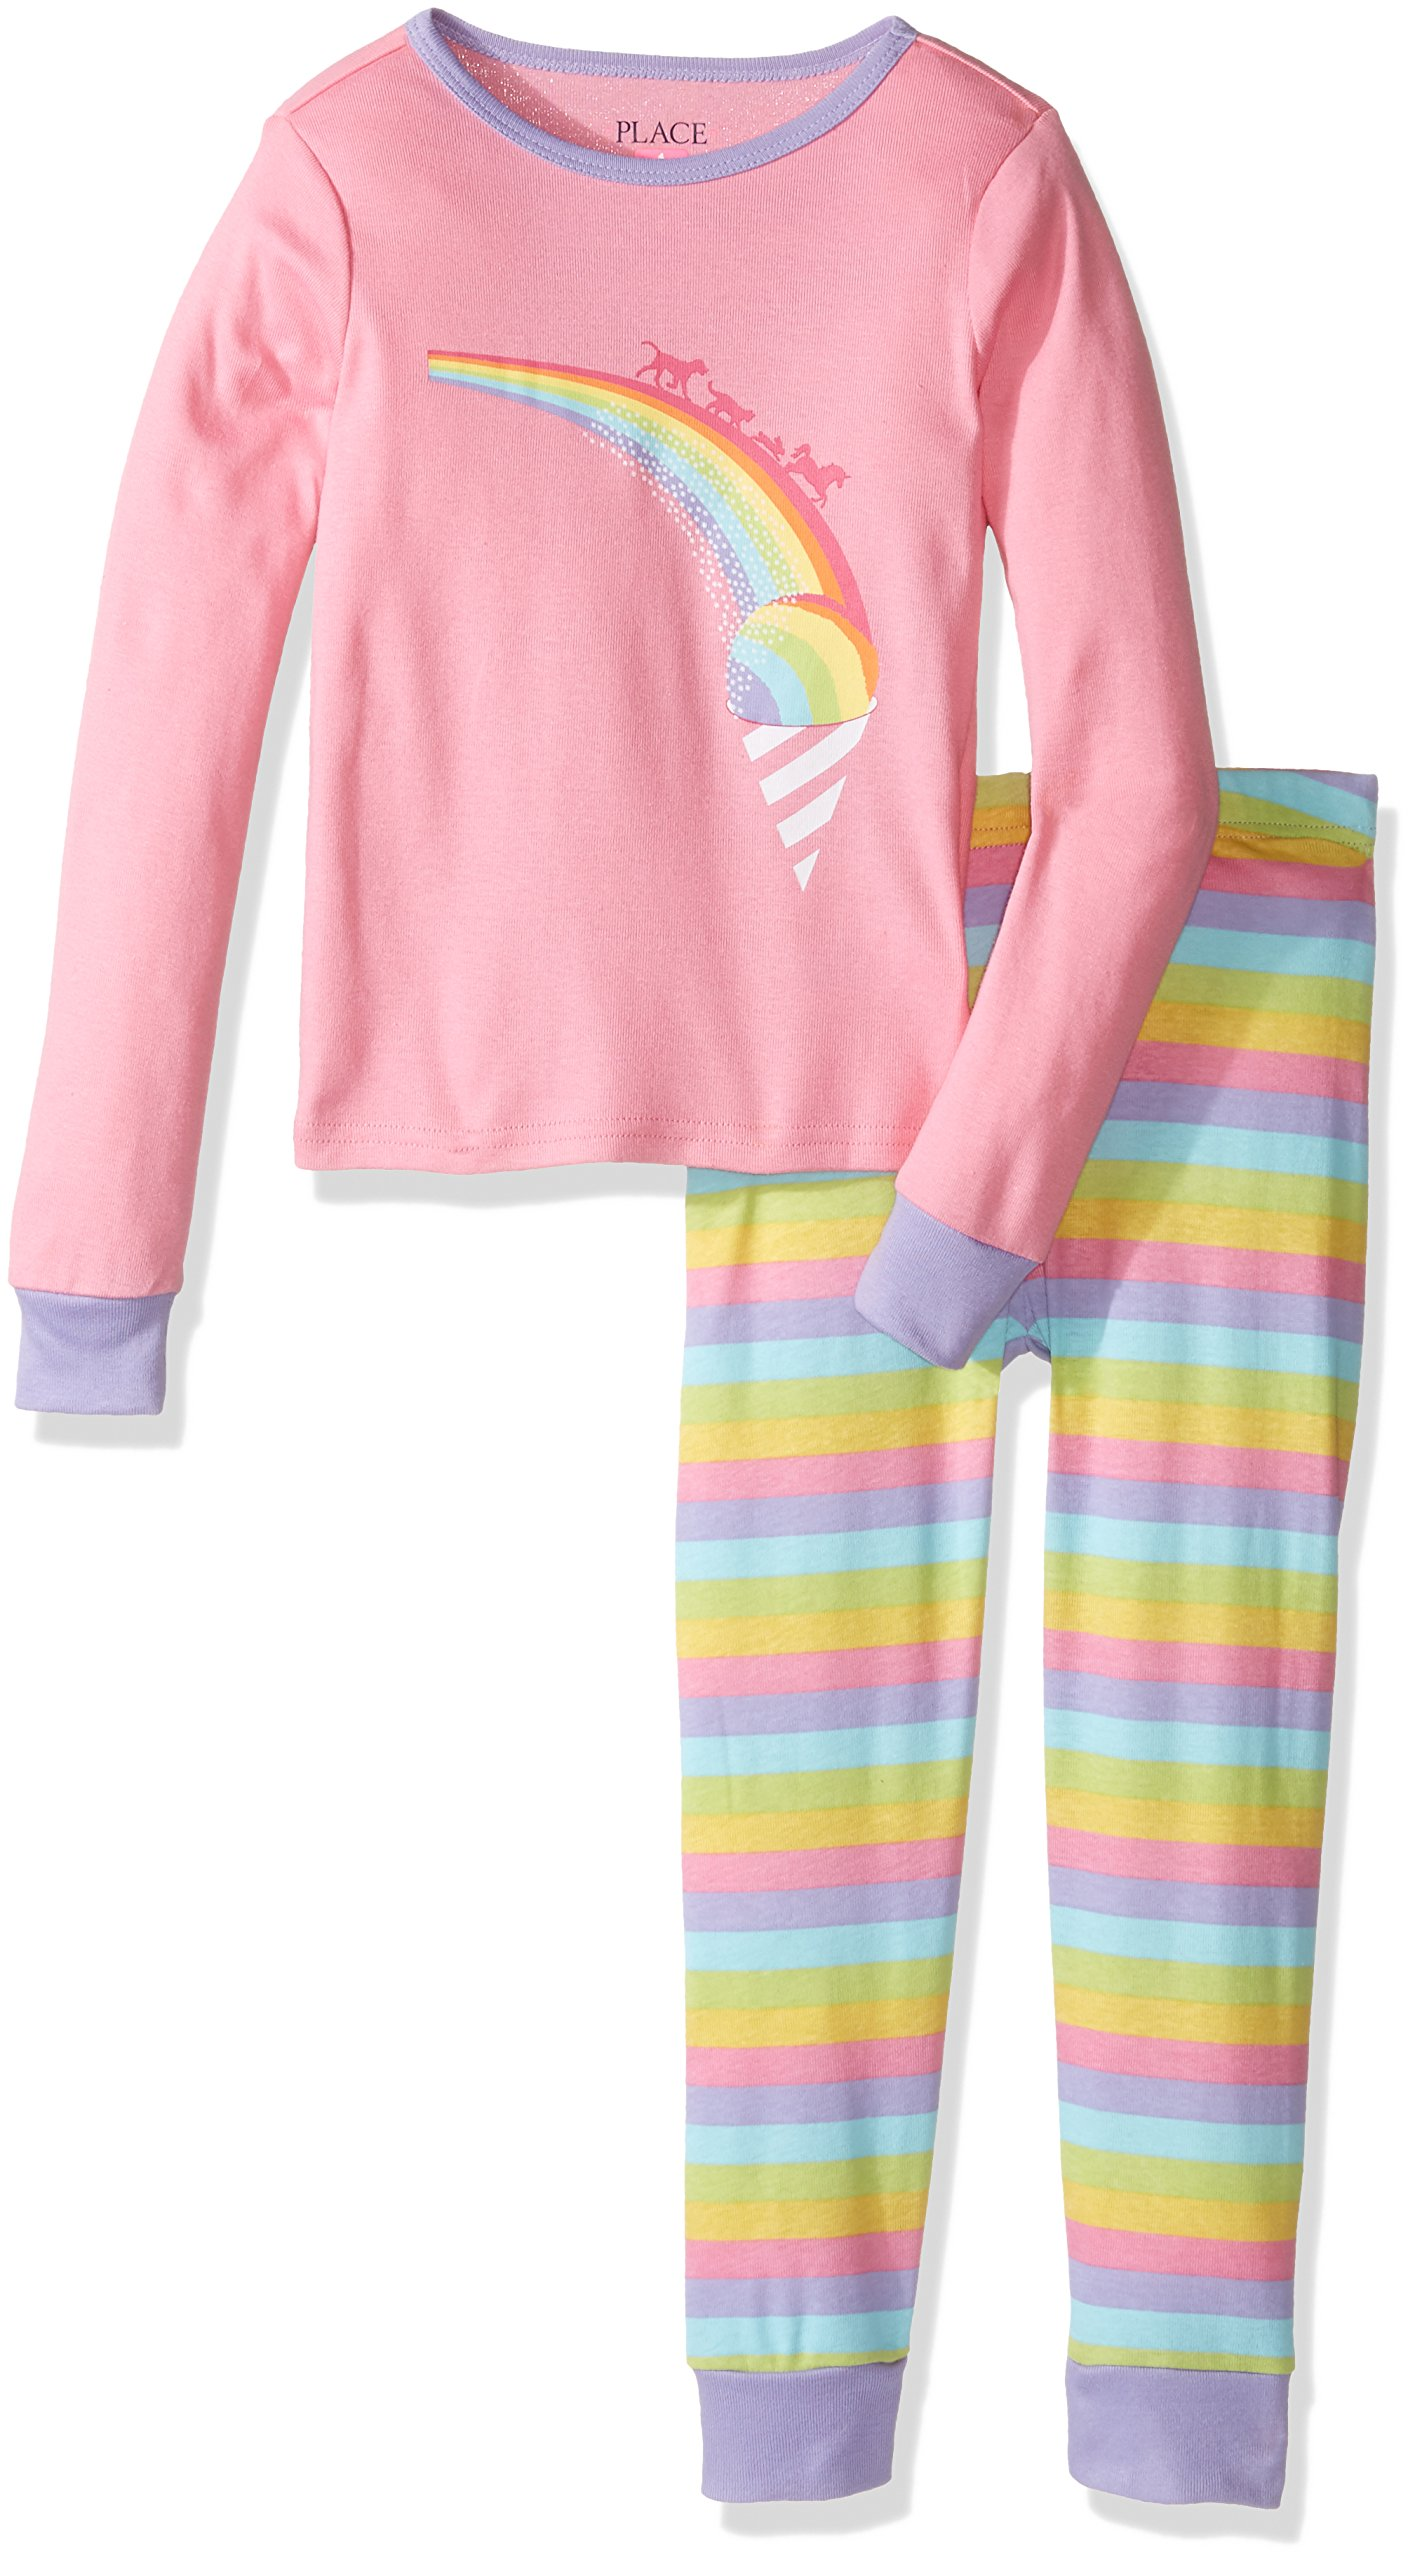 The Children's Place Little Girls' Long Sleeve Top and Pants Pajama Set, Rainbow Pink 65448, 5